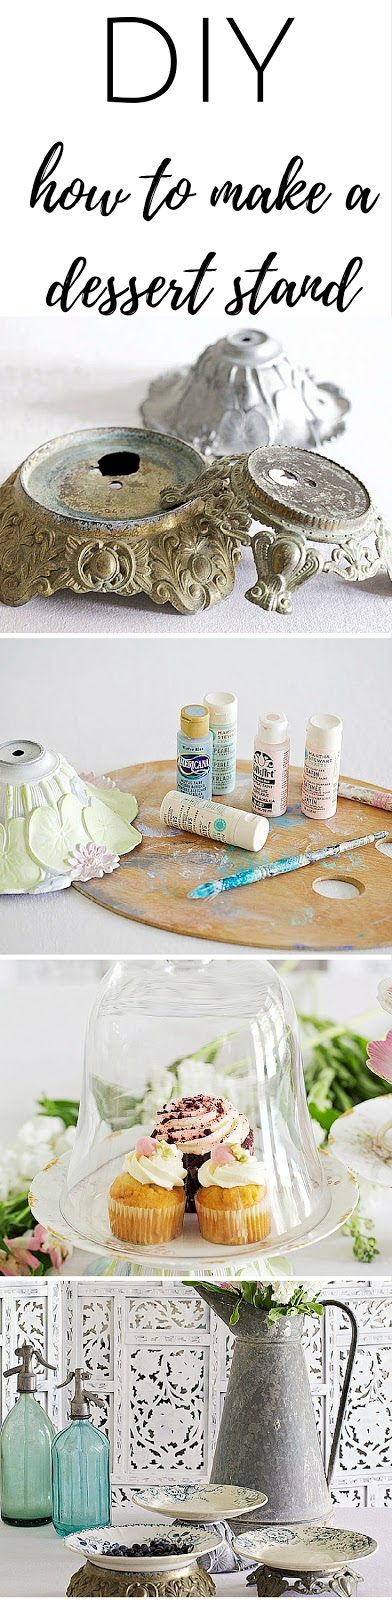 cake stand diy using old lamp parts and vintage plates